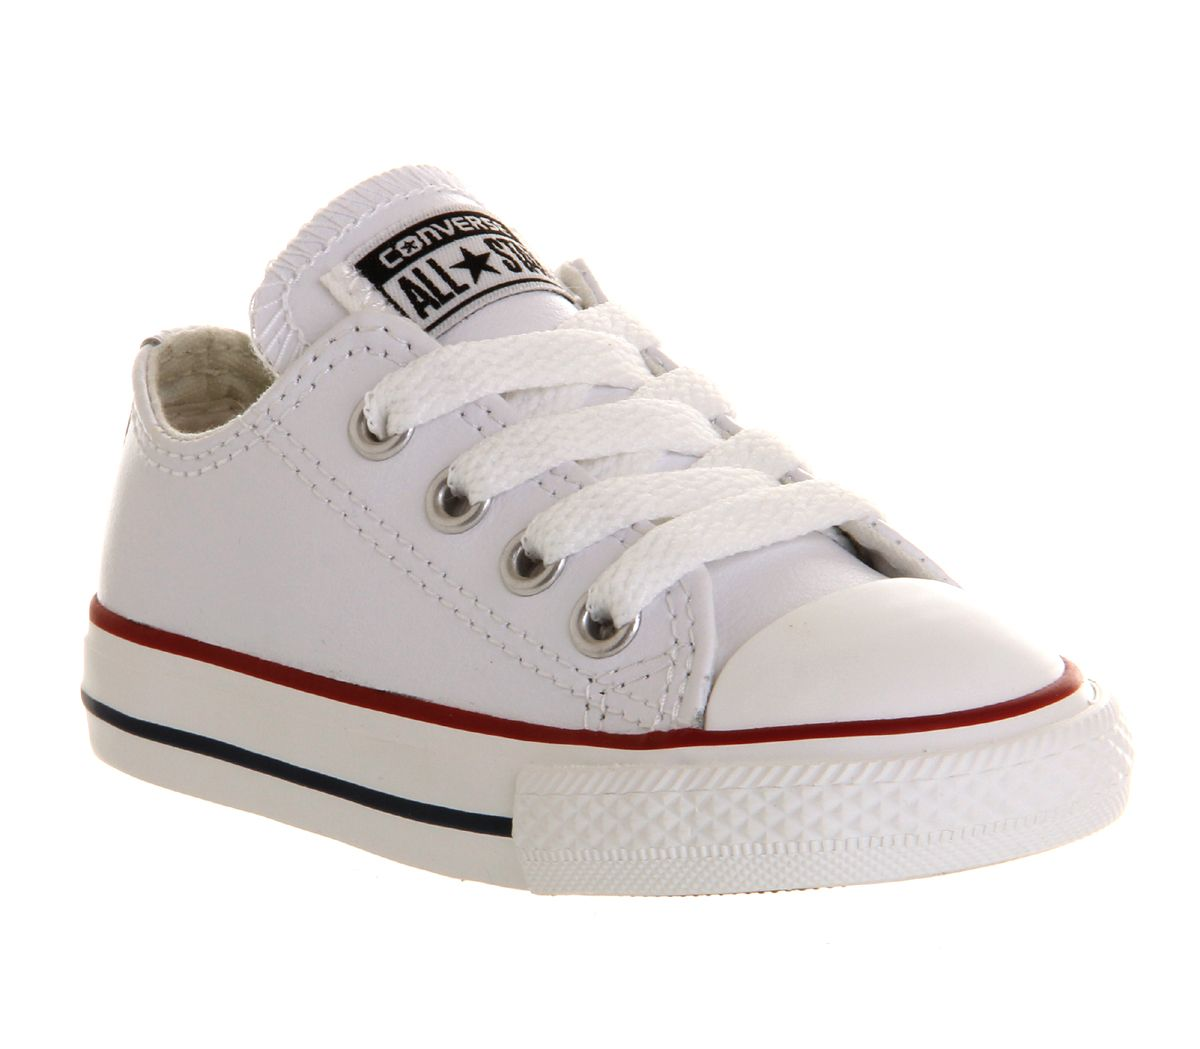 9b3abfdbf16b Converse All Star Low Infant Shoes Optical White Leather - Unisex